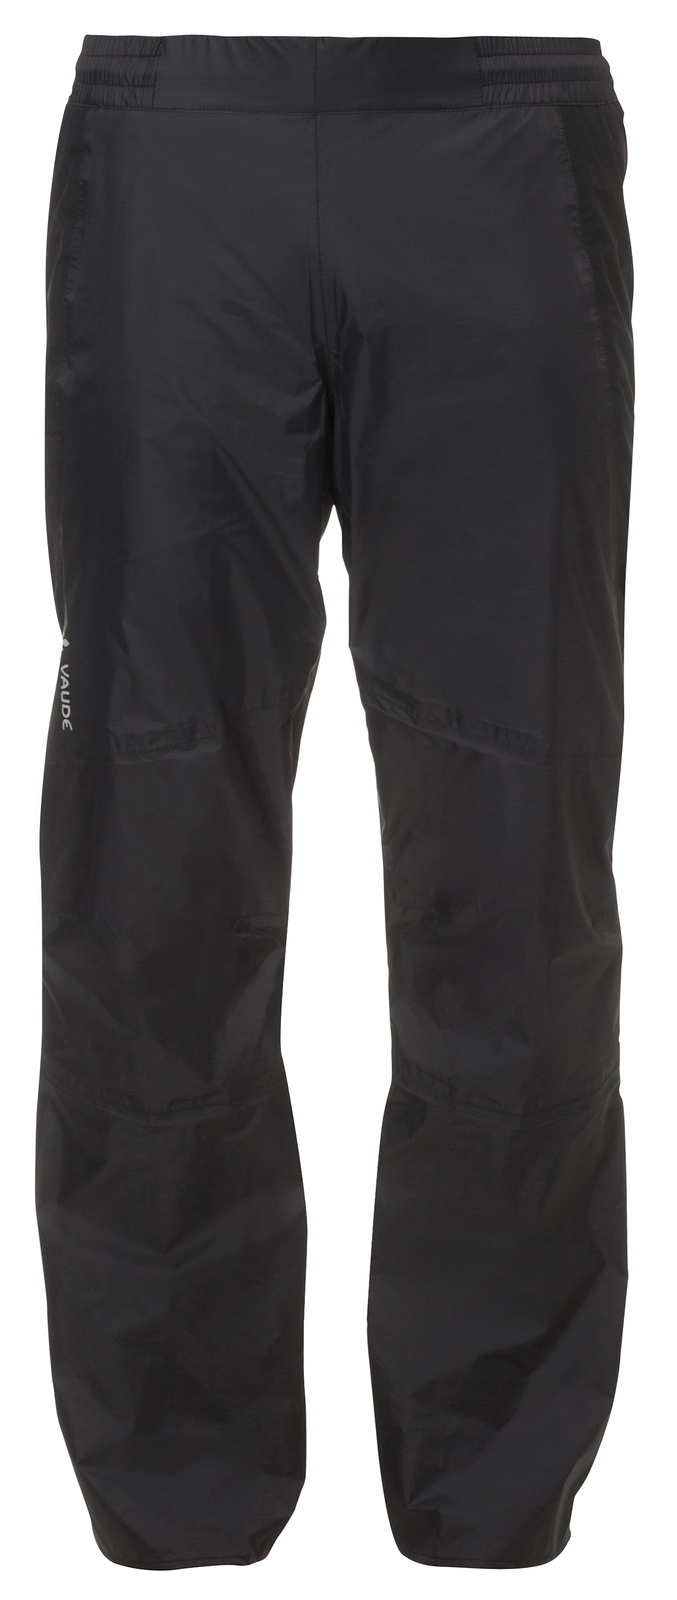 VAUDE Men´s Spray Pants III black Größe XXXL-Long - schneider-sports